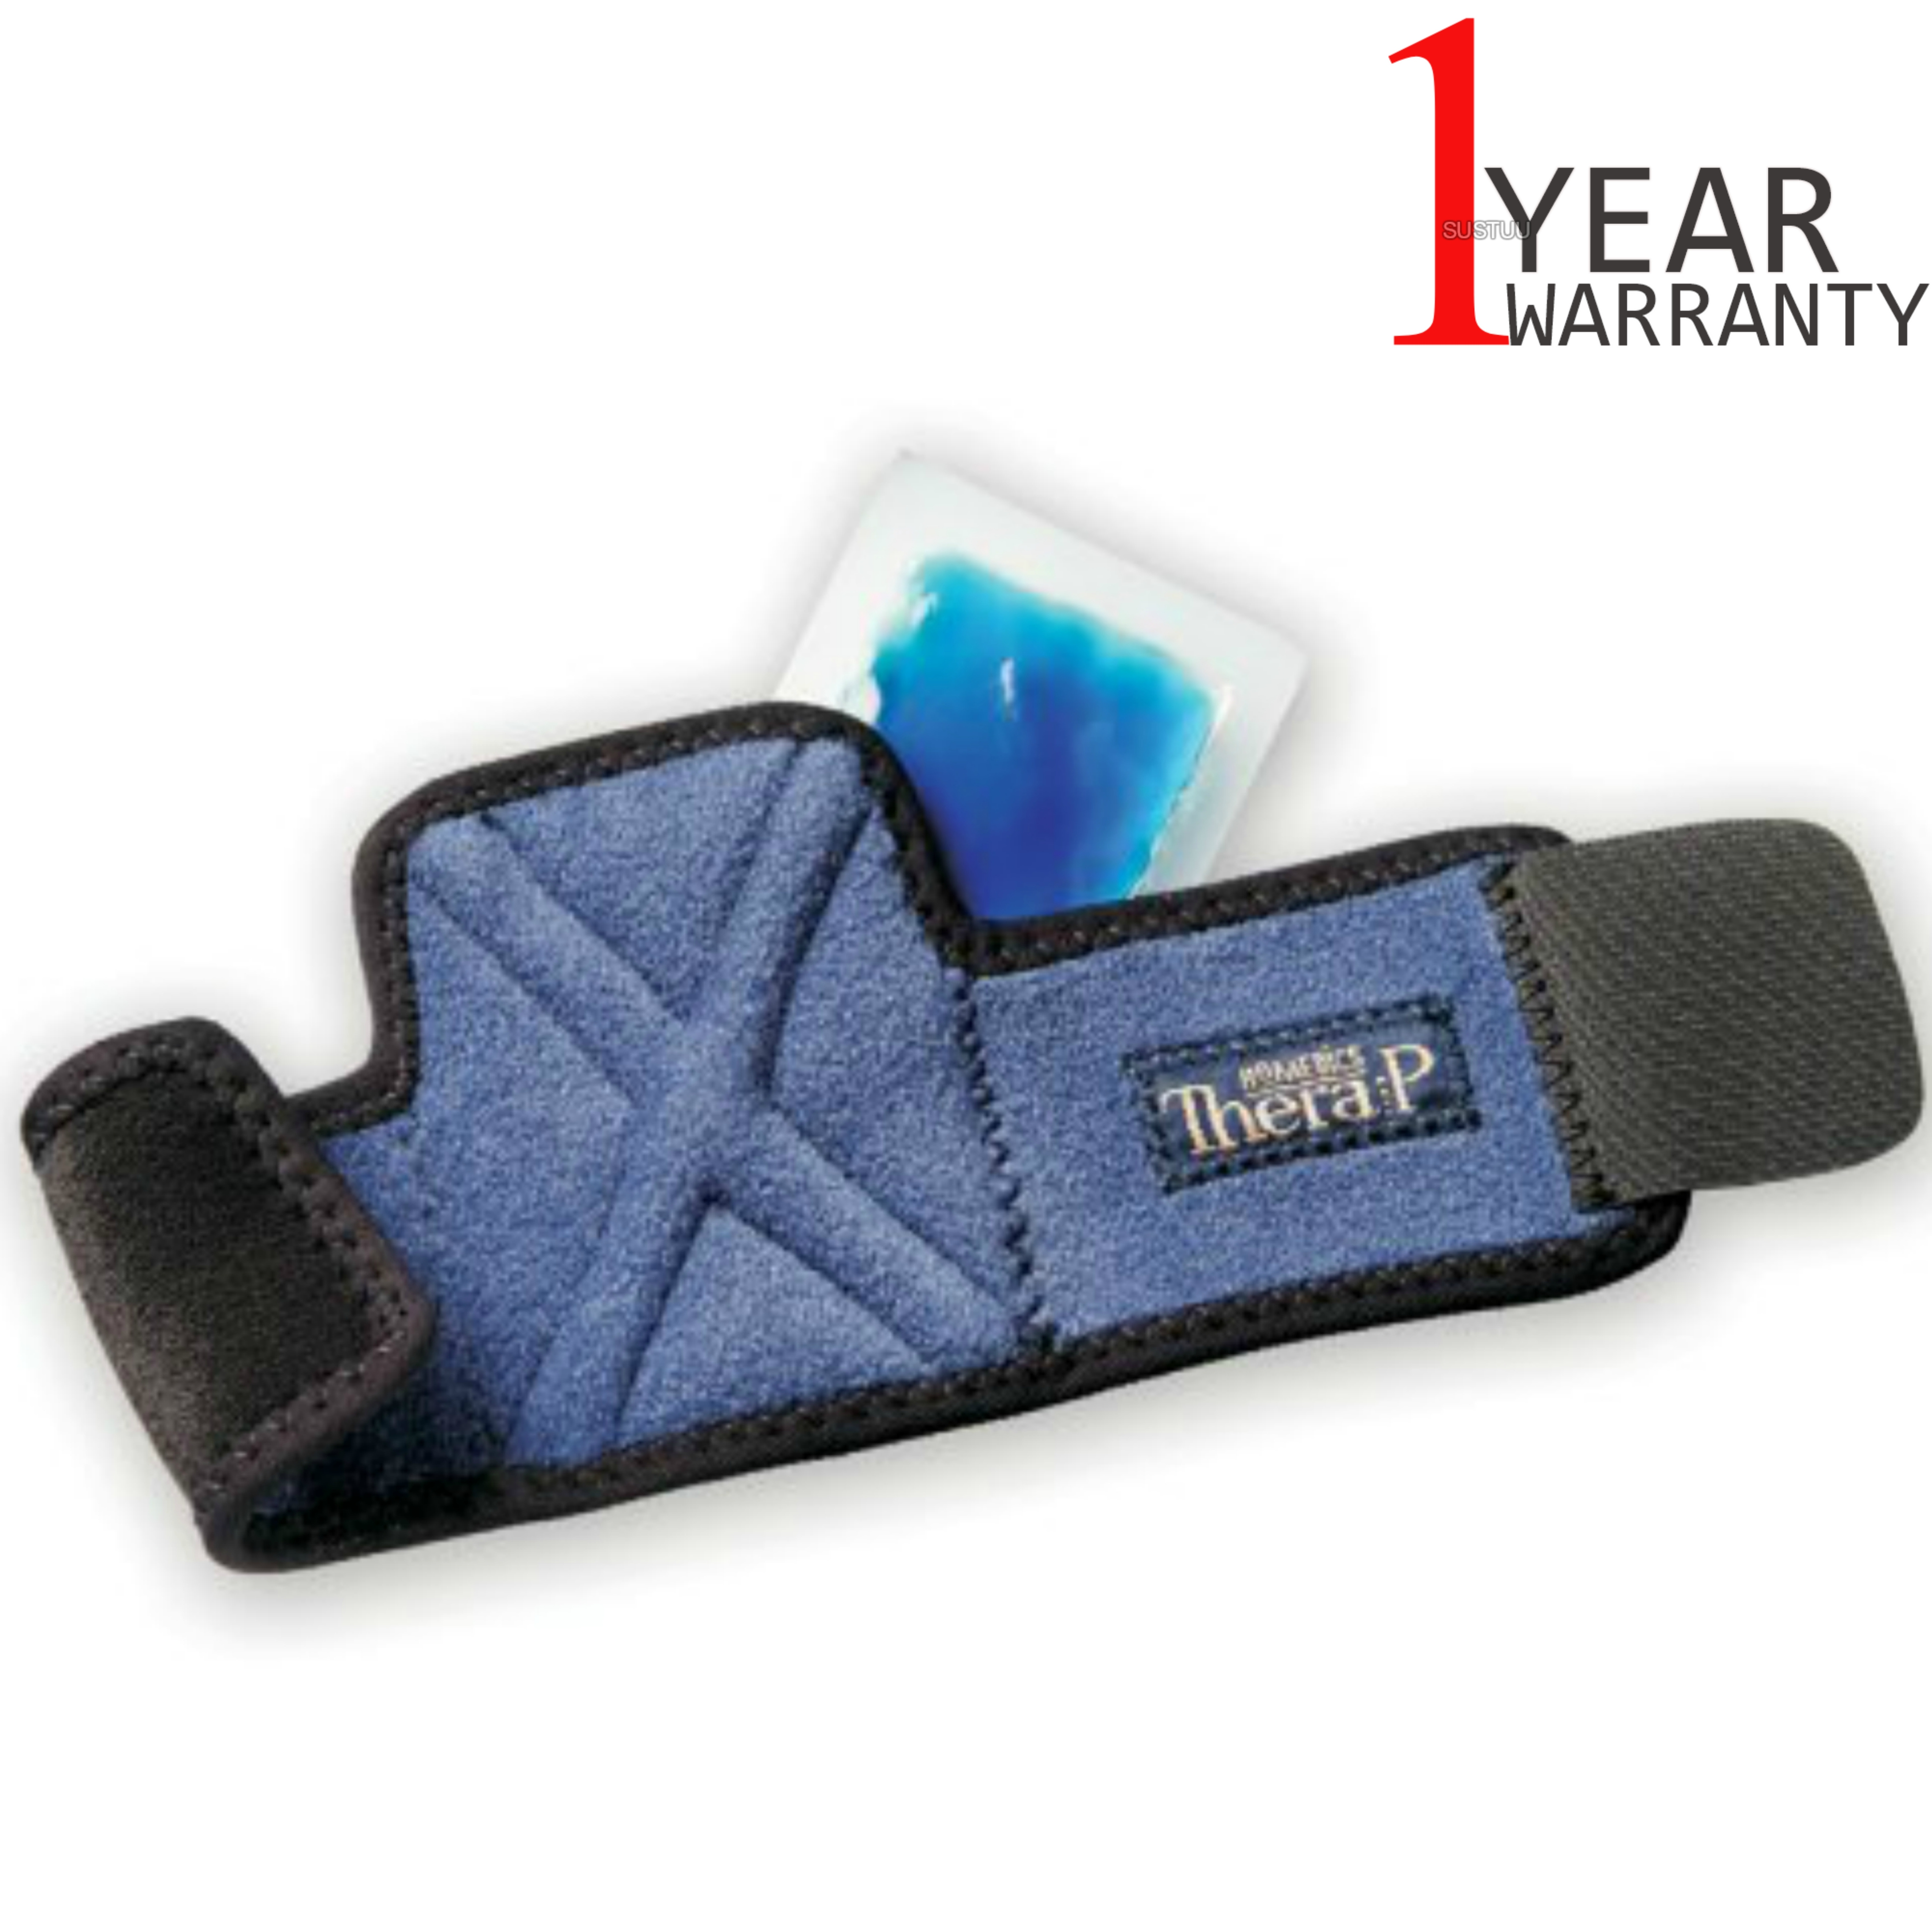 Homedics MW-WHC Magnetic Hot & Cold Therapy Wrist Wrap | Lightweight Design | Blue